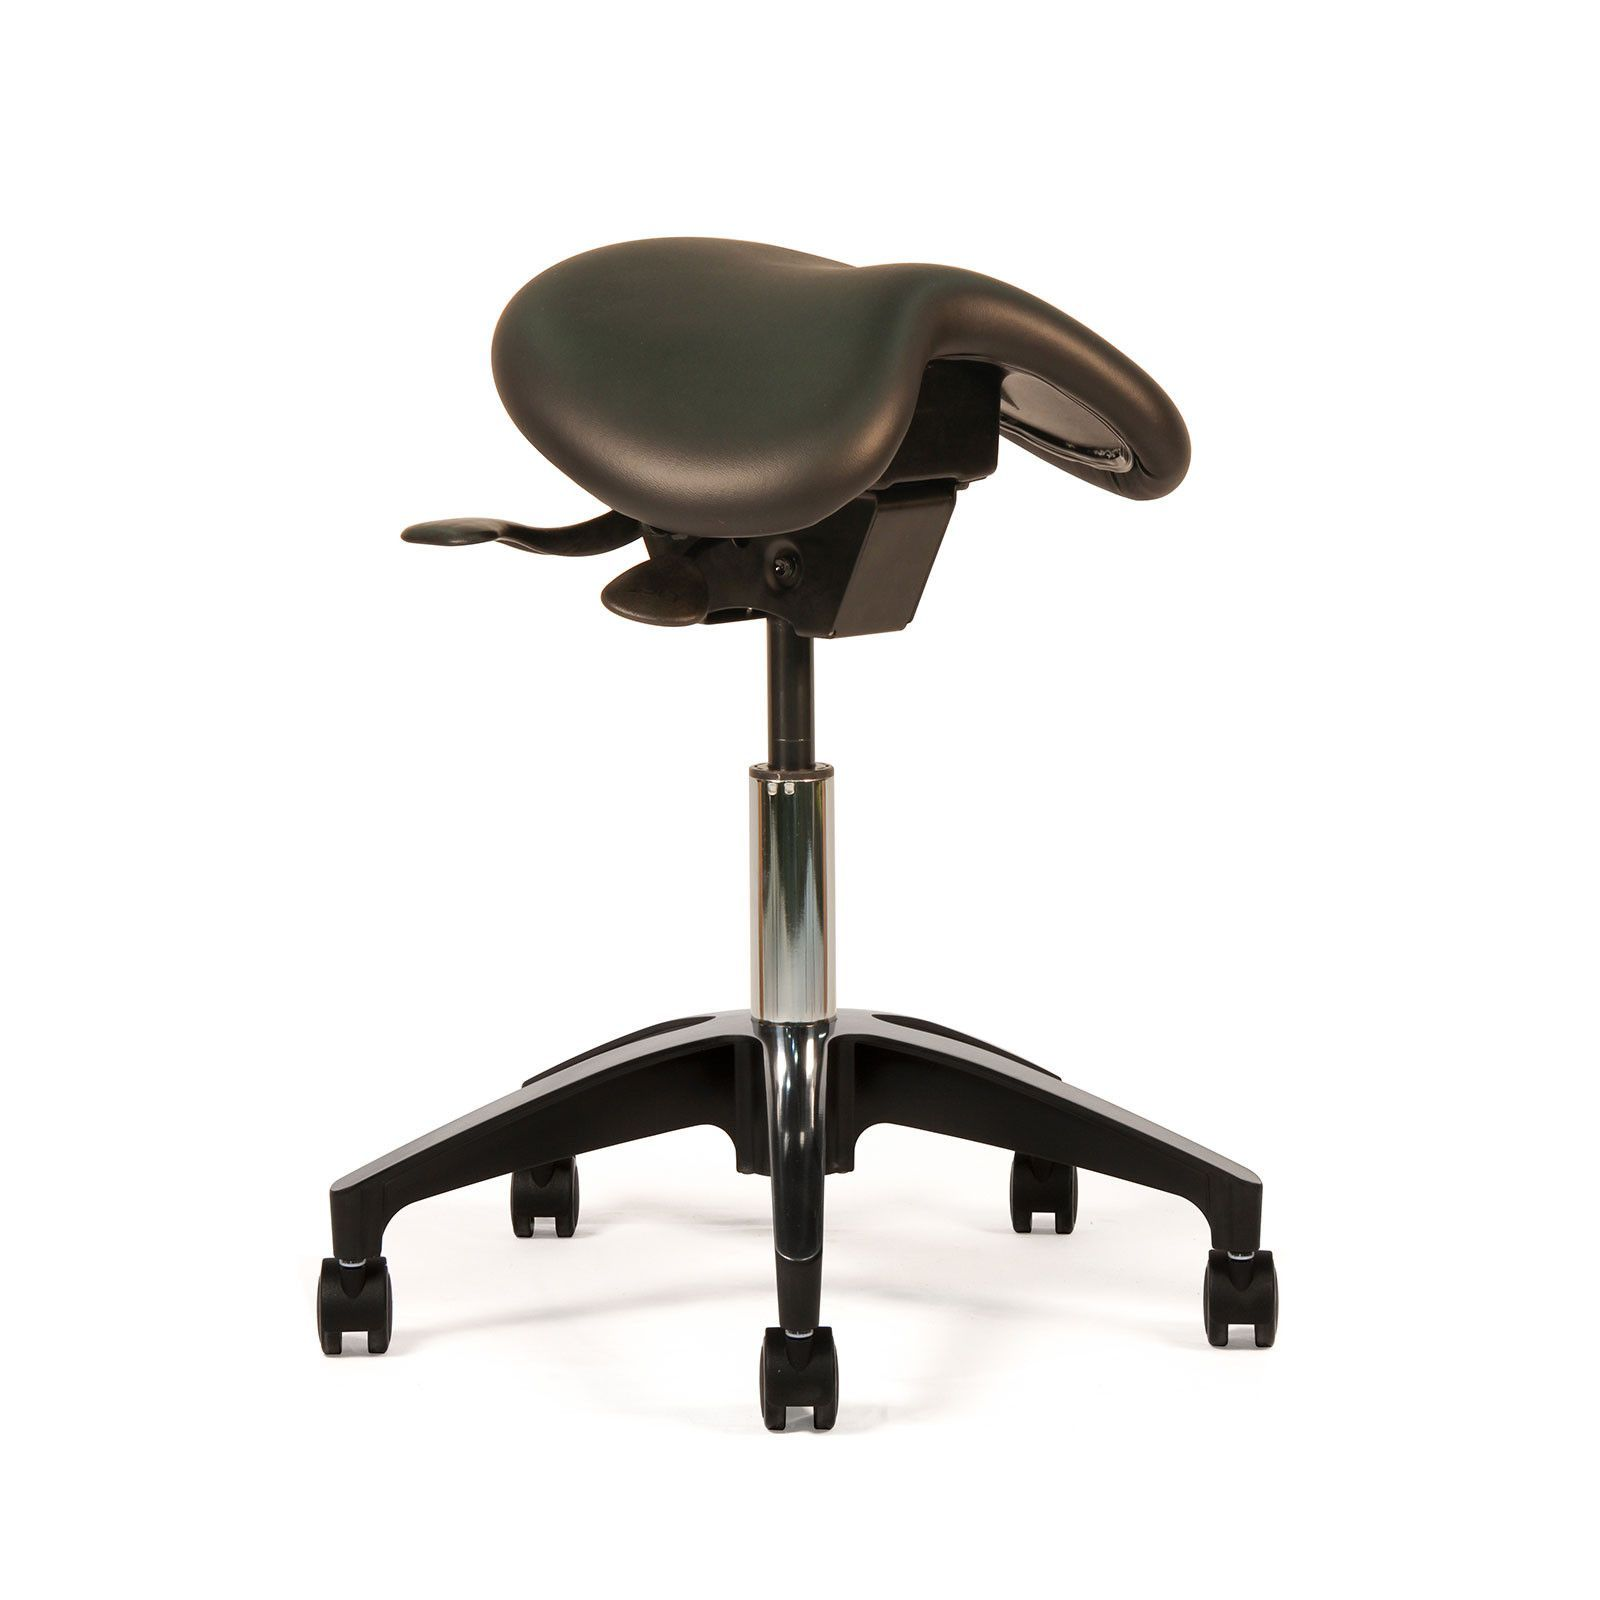 ergonomic chair betterposture saddle chair jobri. Crown Seating - English Saddle Ergonomic Medical Chair; ErgoLab E400 Chair Betterposture Jobri B